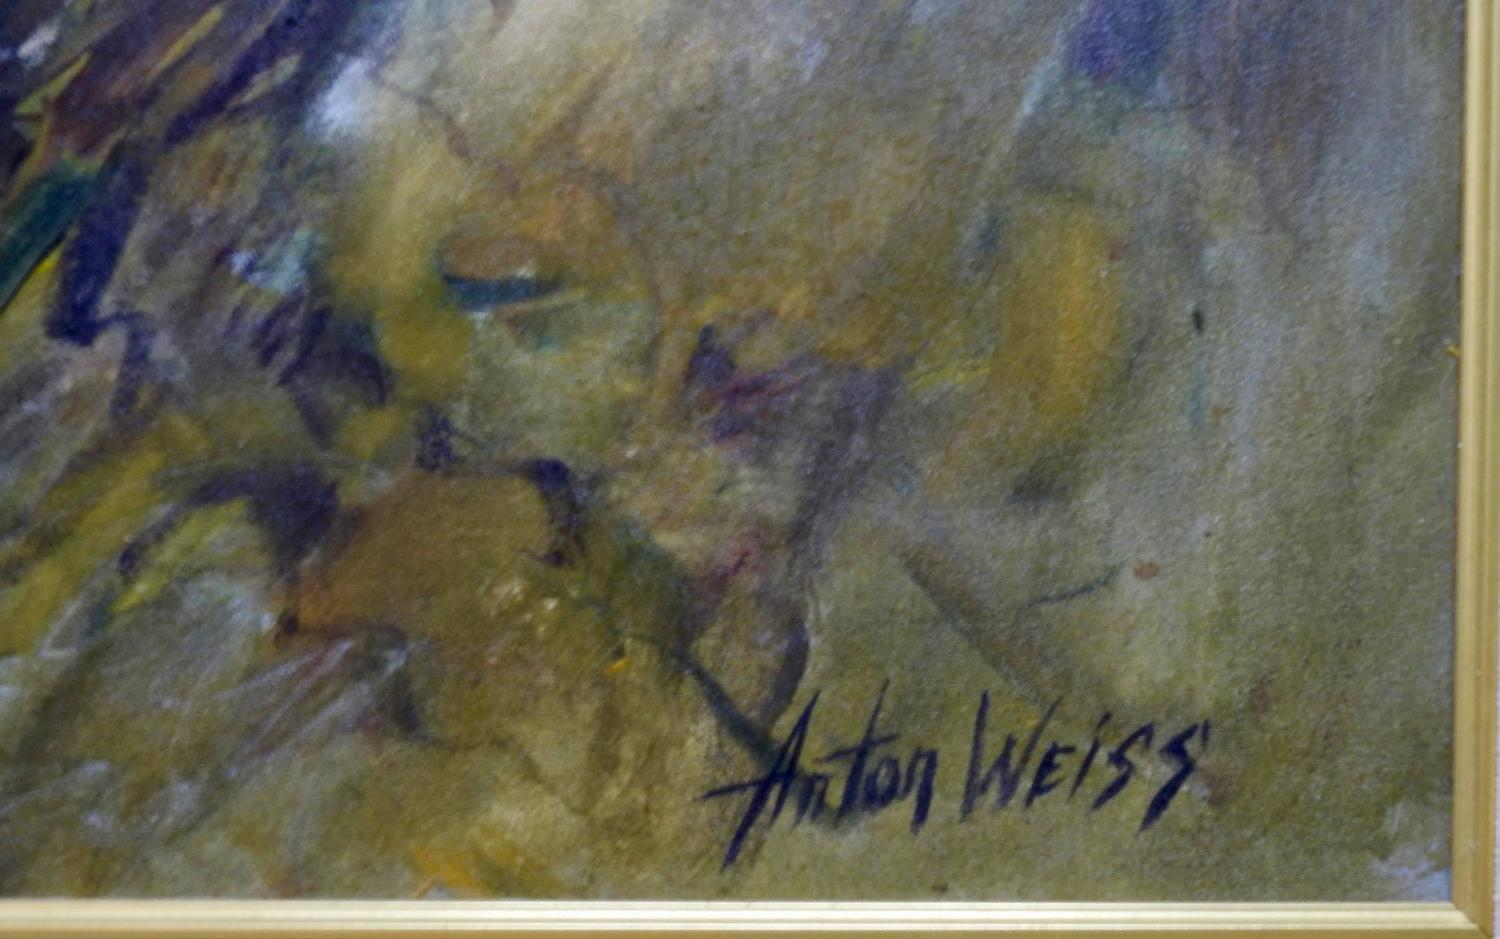 Anton Weiss Paintings Sale